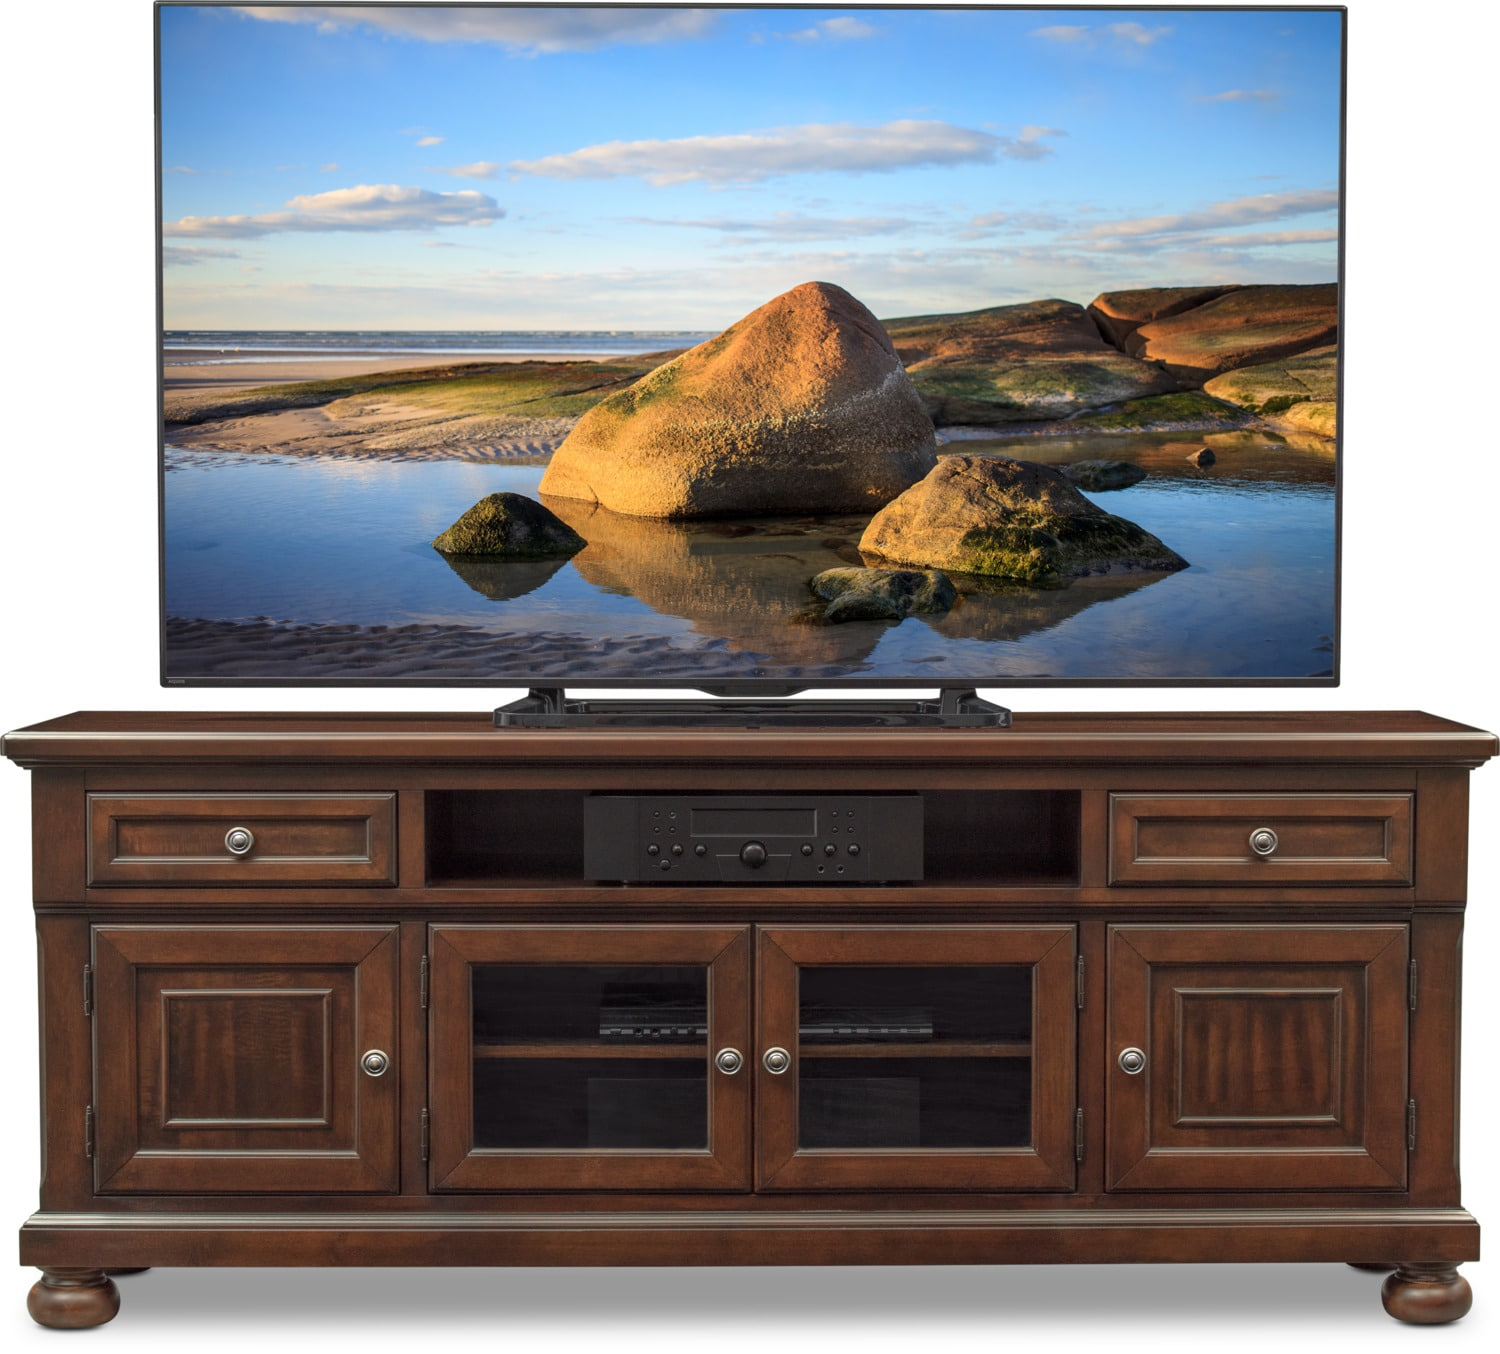 TV Stand Entertainment Center Media Console Wood Furniture Cabinet Storage Red